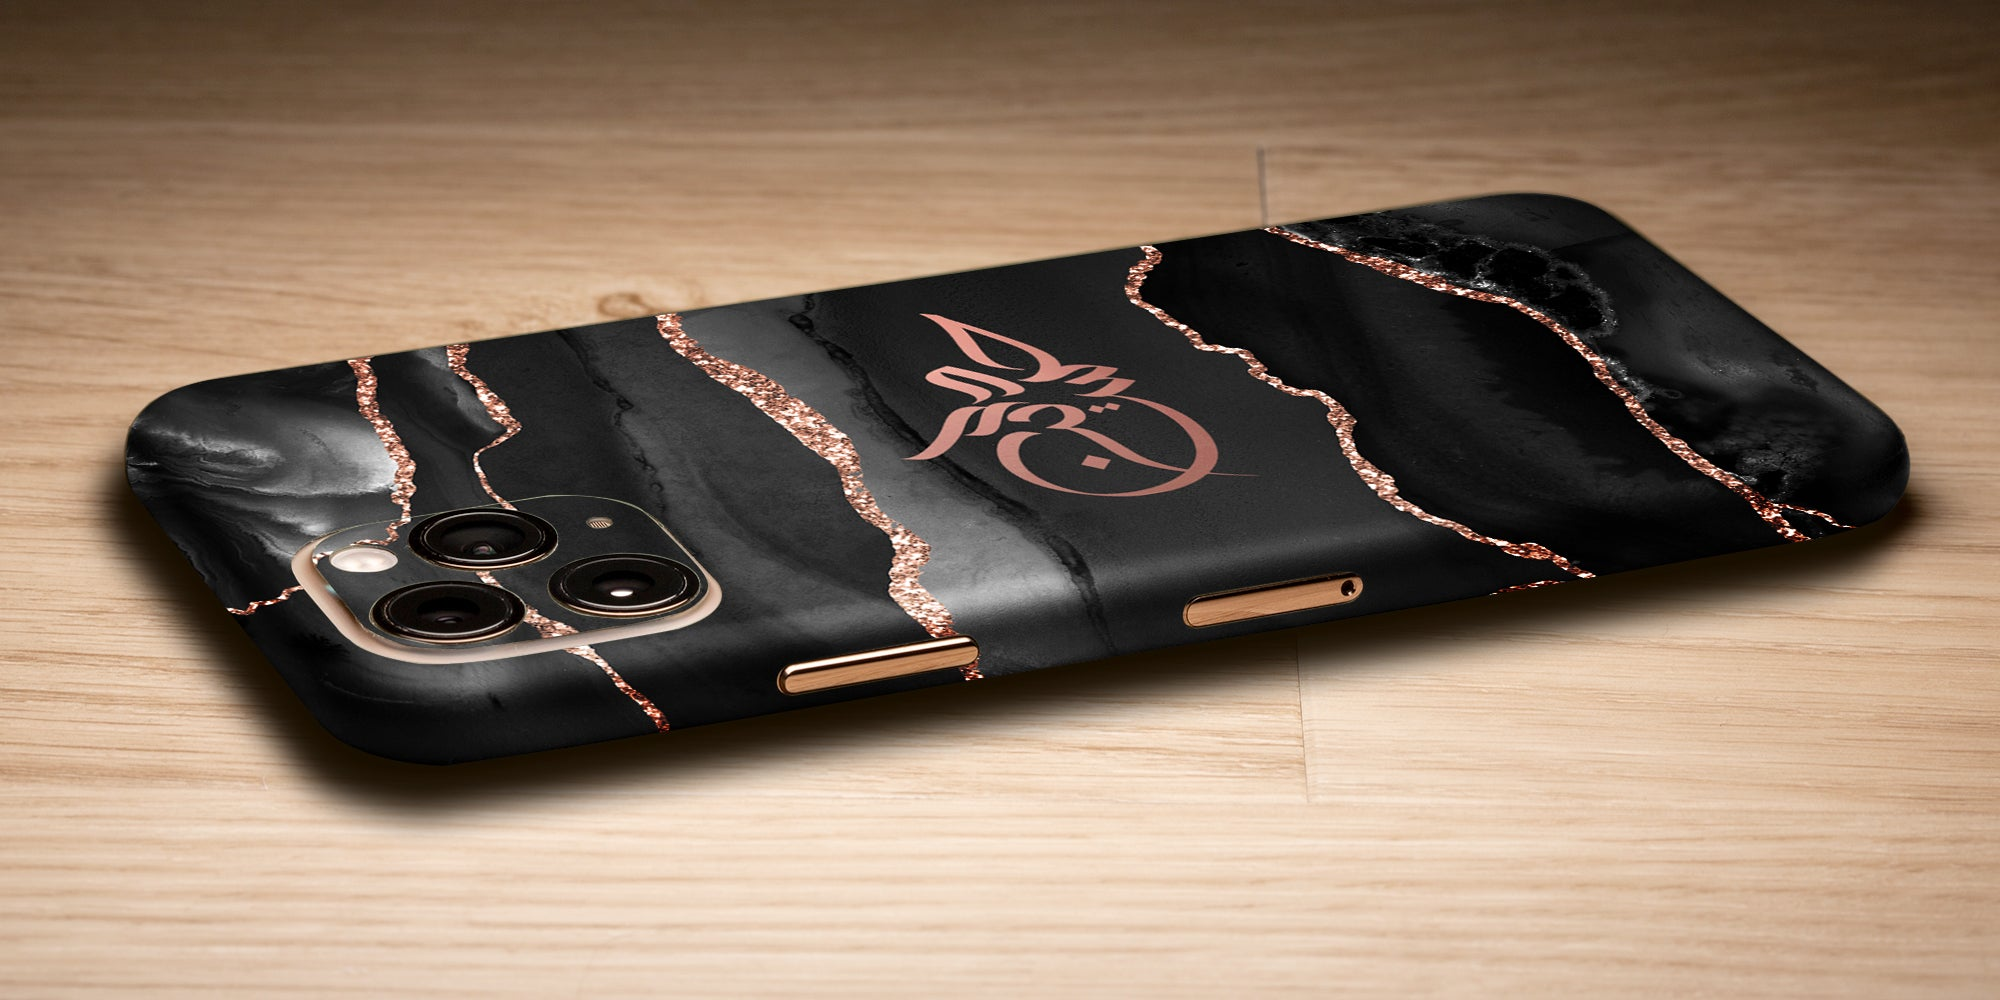 Agate Design Decal Skin With Personalised Arabic Name Phone Wrap - Black and Rose Gold